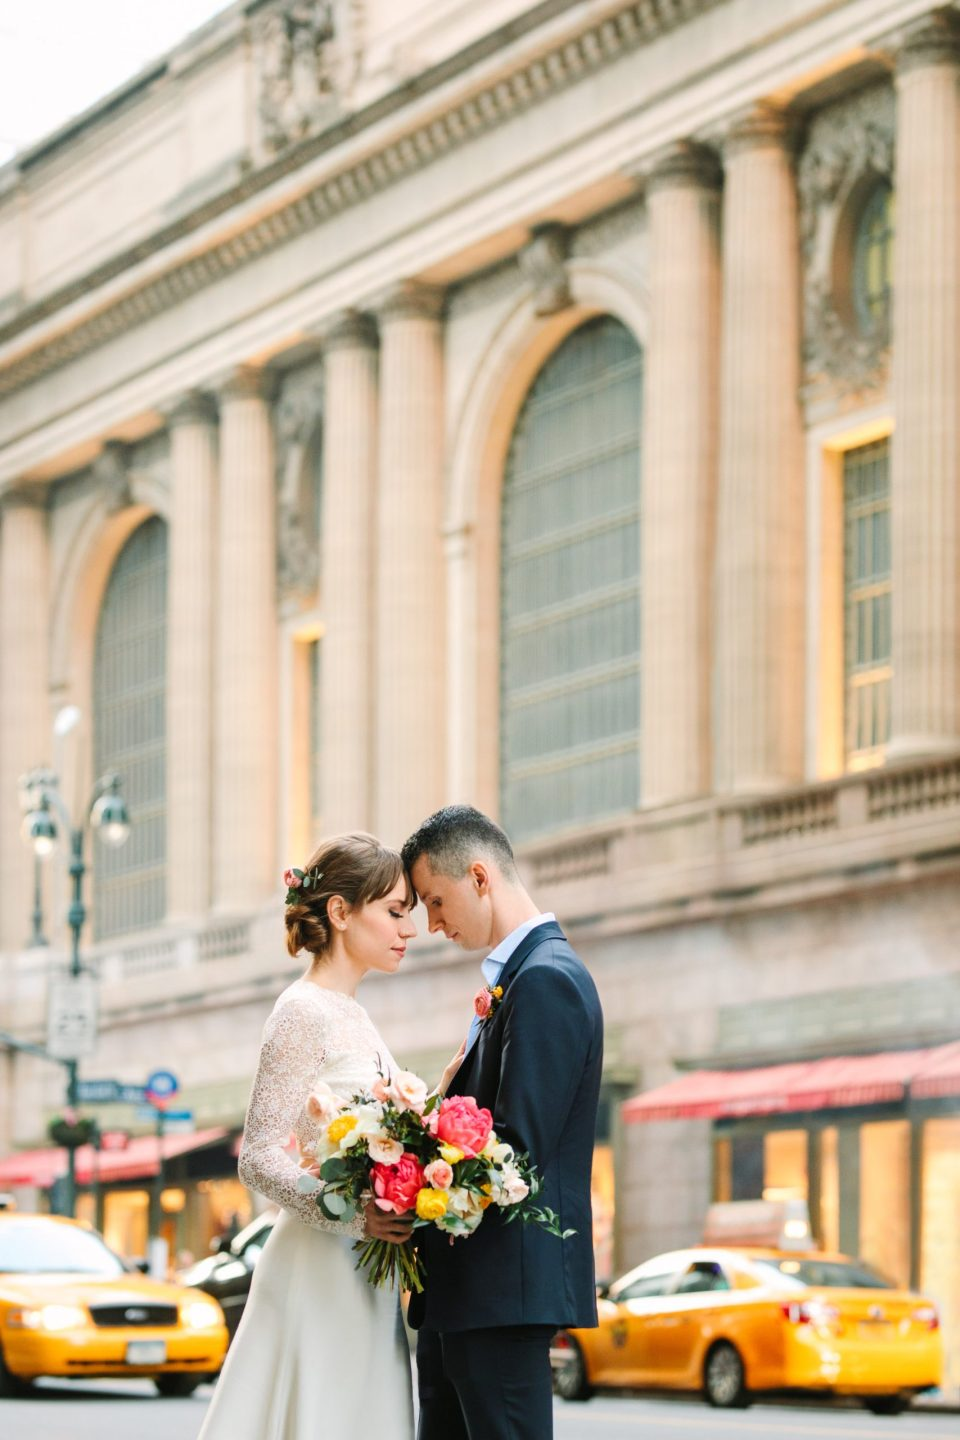 Bride and groom by NYC's Grand Central Station by Mary Costa Photography